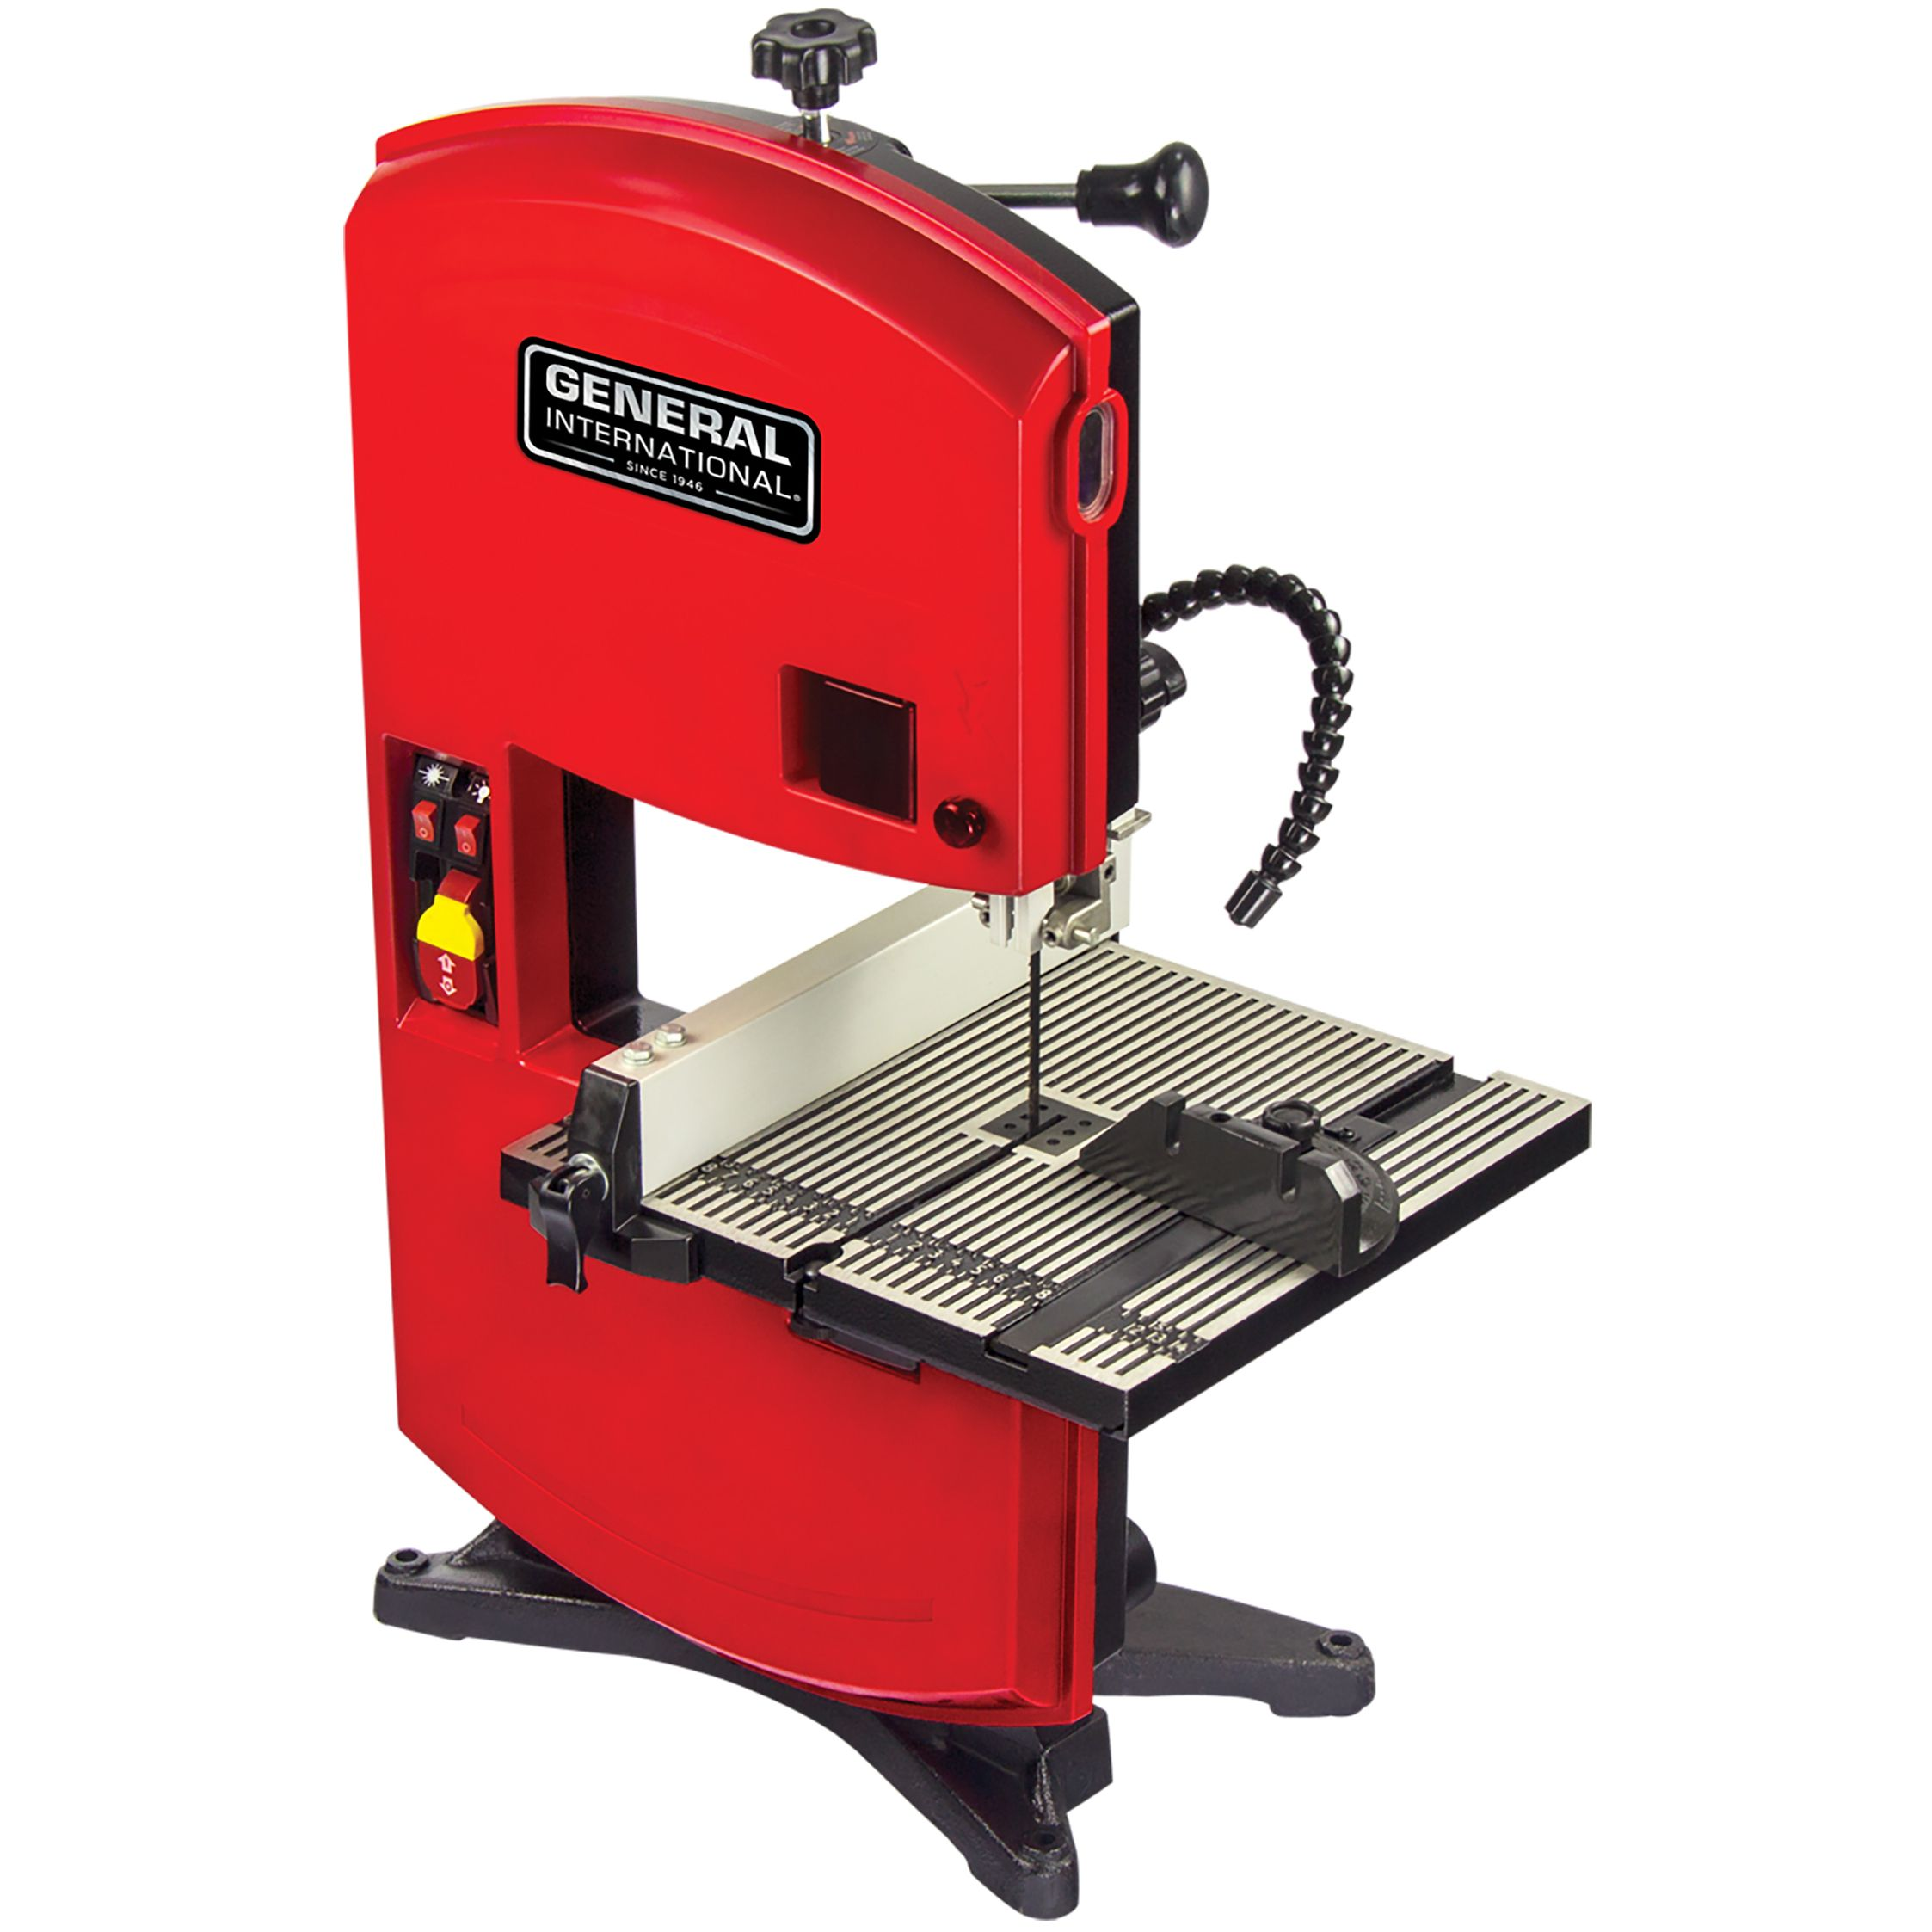 Hammer Bandsaw Review